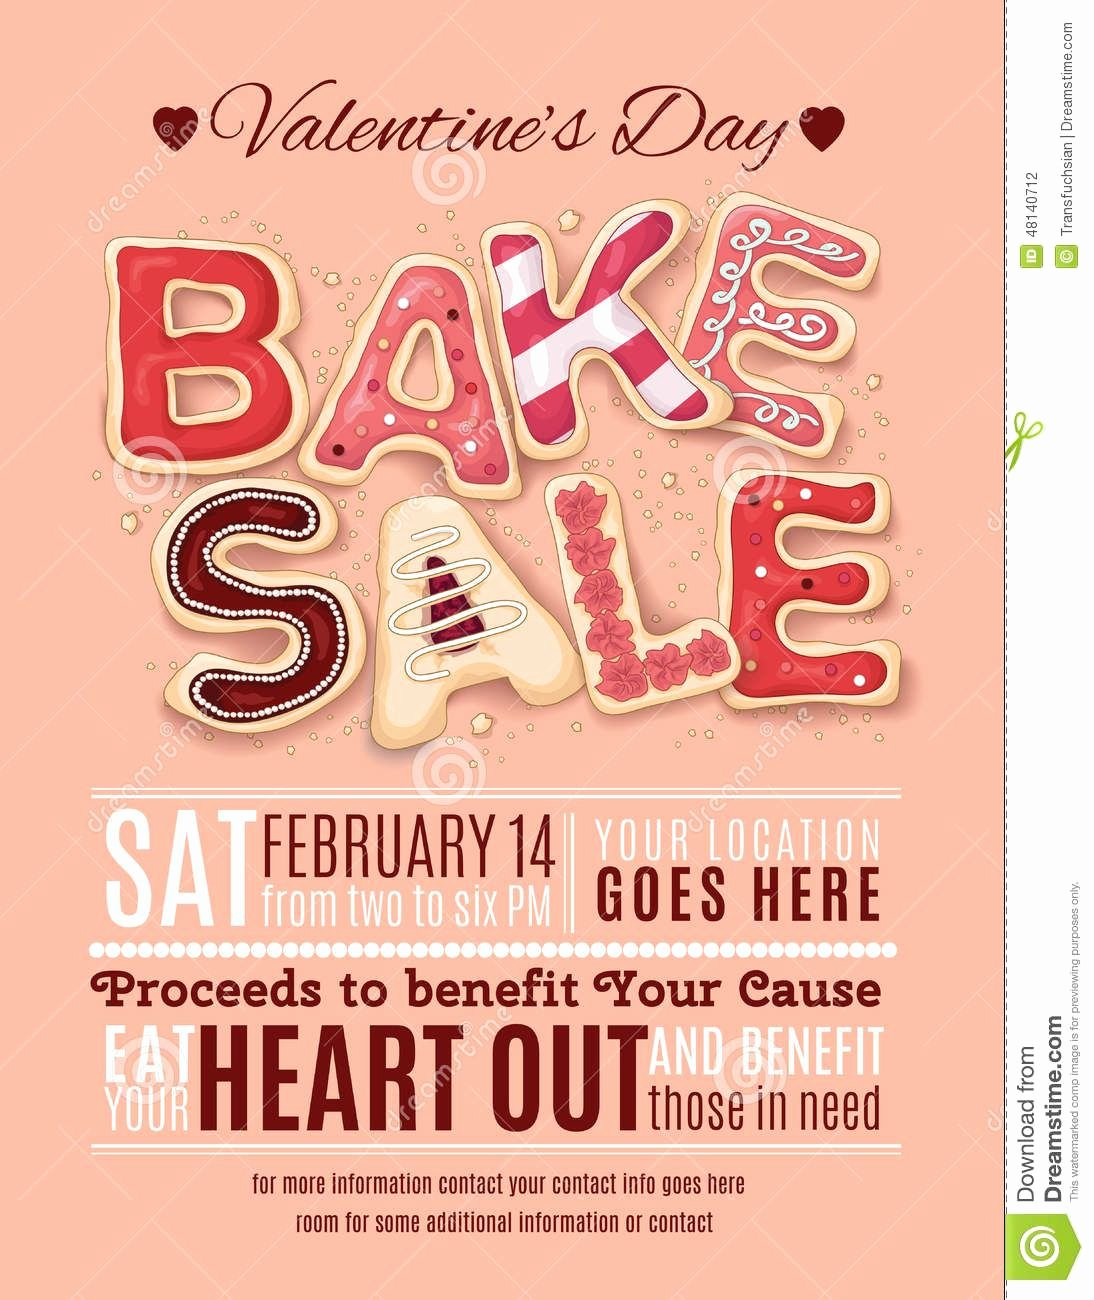 Free Bake Sale Template Luxury Valentines Day Bake Sale Flyer Template Download From